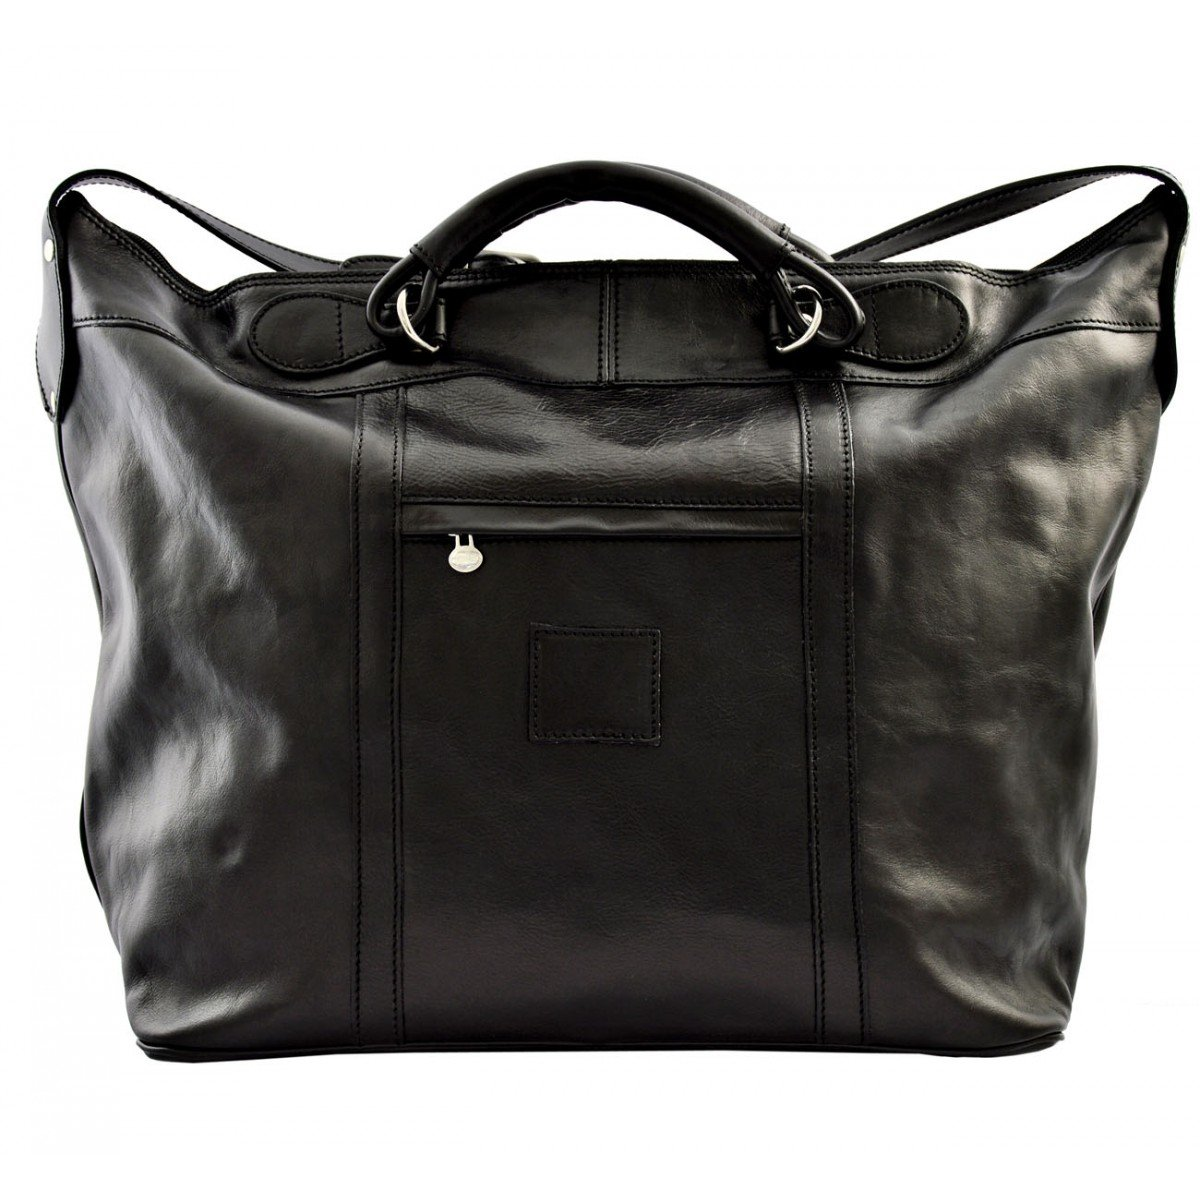 Dream Leather Bags Made in Italy Genuine Leather メンズ US サイズ: 1 カラー: ブラック B074MB1J2X